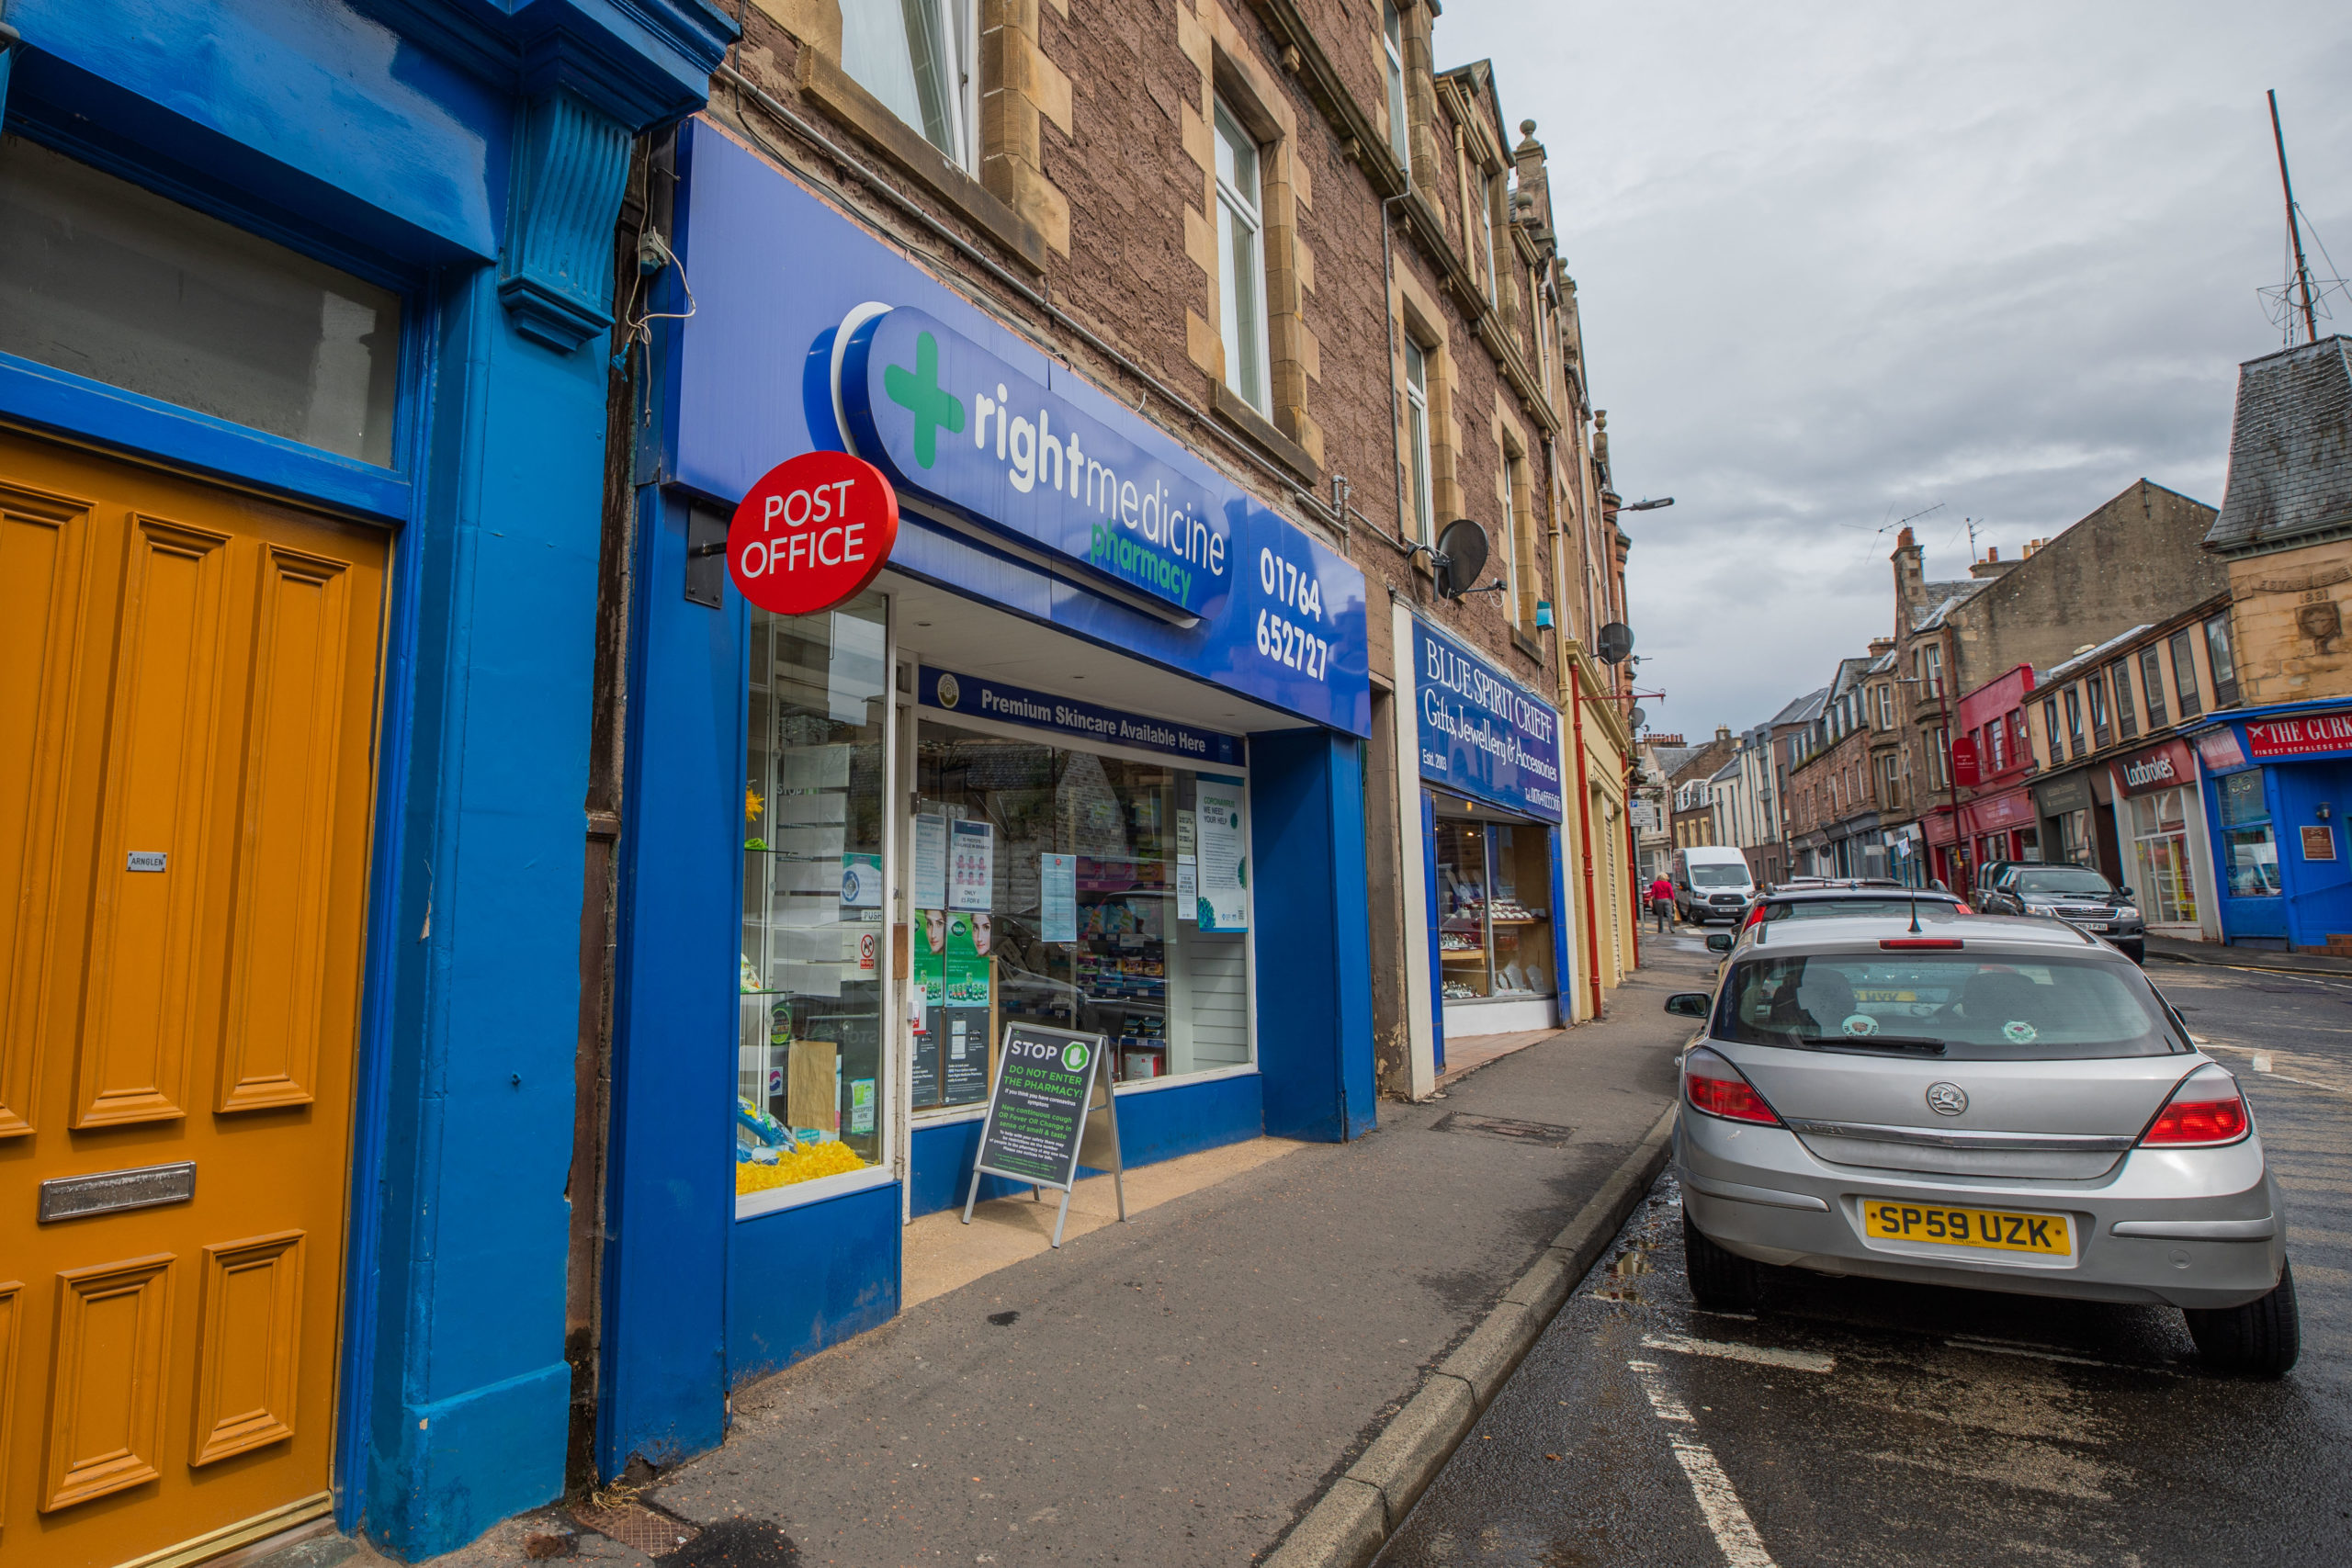 The Post Office at Right Medicine Pharmacy, Crieff. Picture: Steve MacDougall.